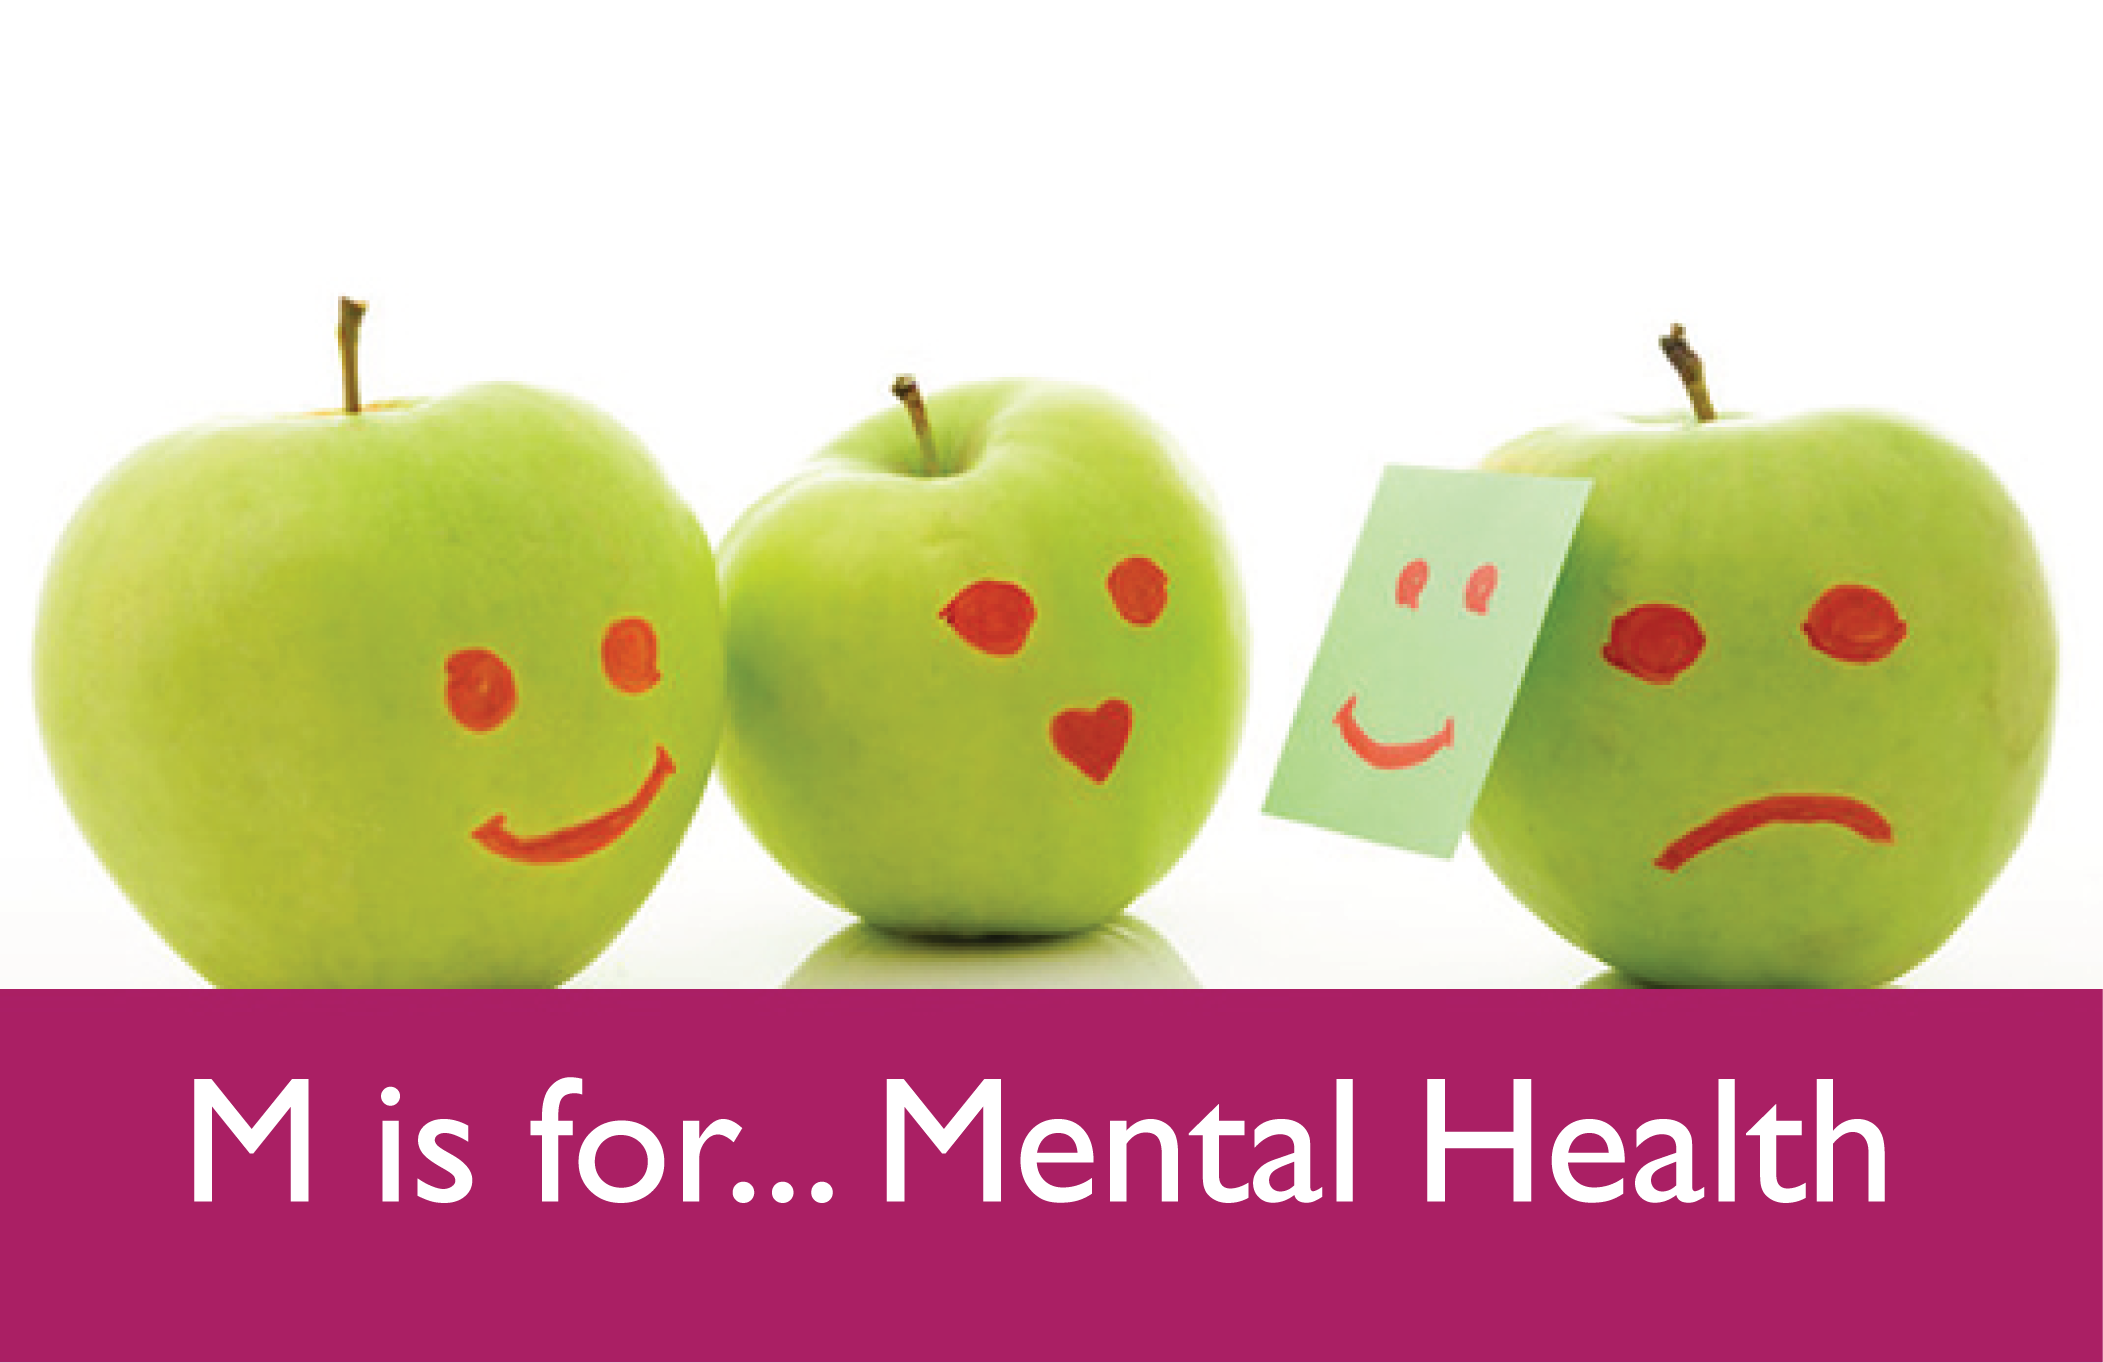 M is for… Mental Health